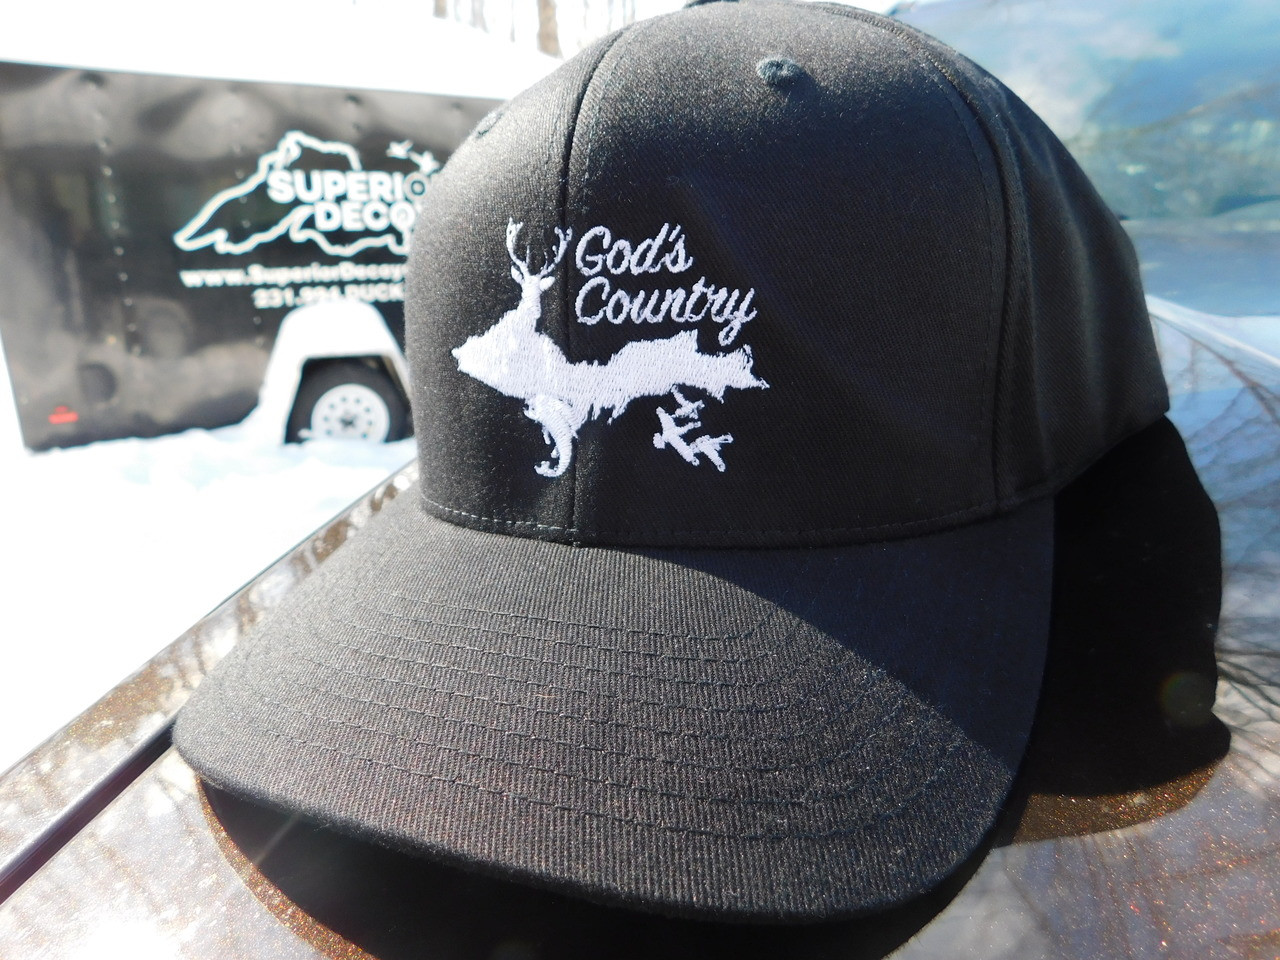 9df6aa39ed3df God s Country Upper Peninsula Black Flexfit Hat - Superior Decoys